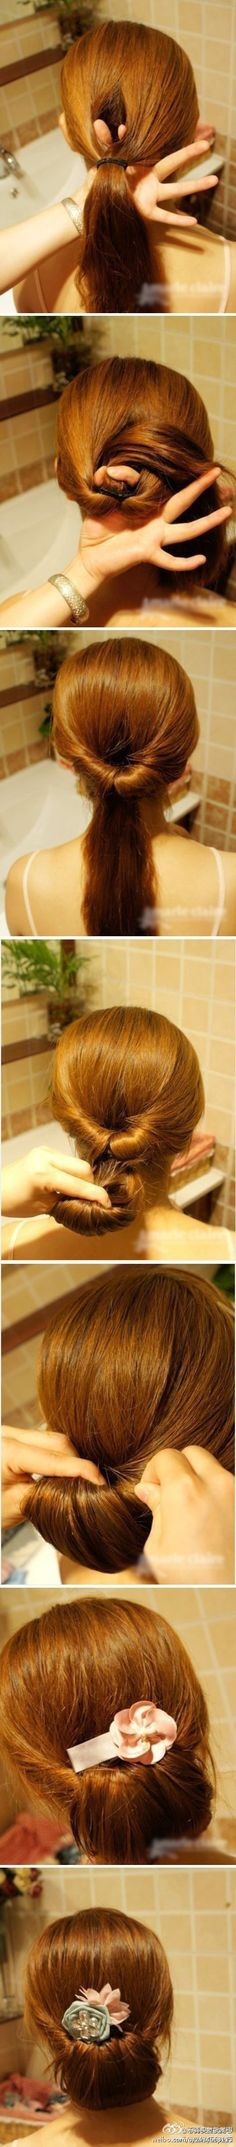 Sharing hairstyles on my blog :)